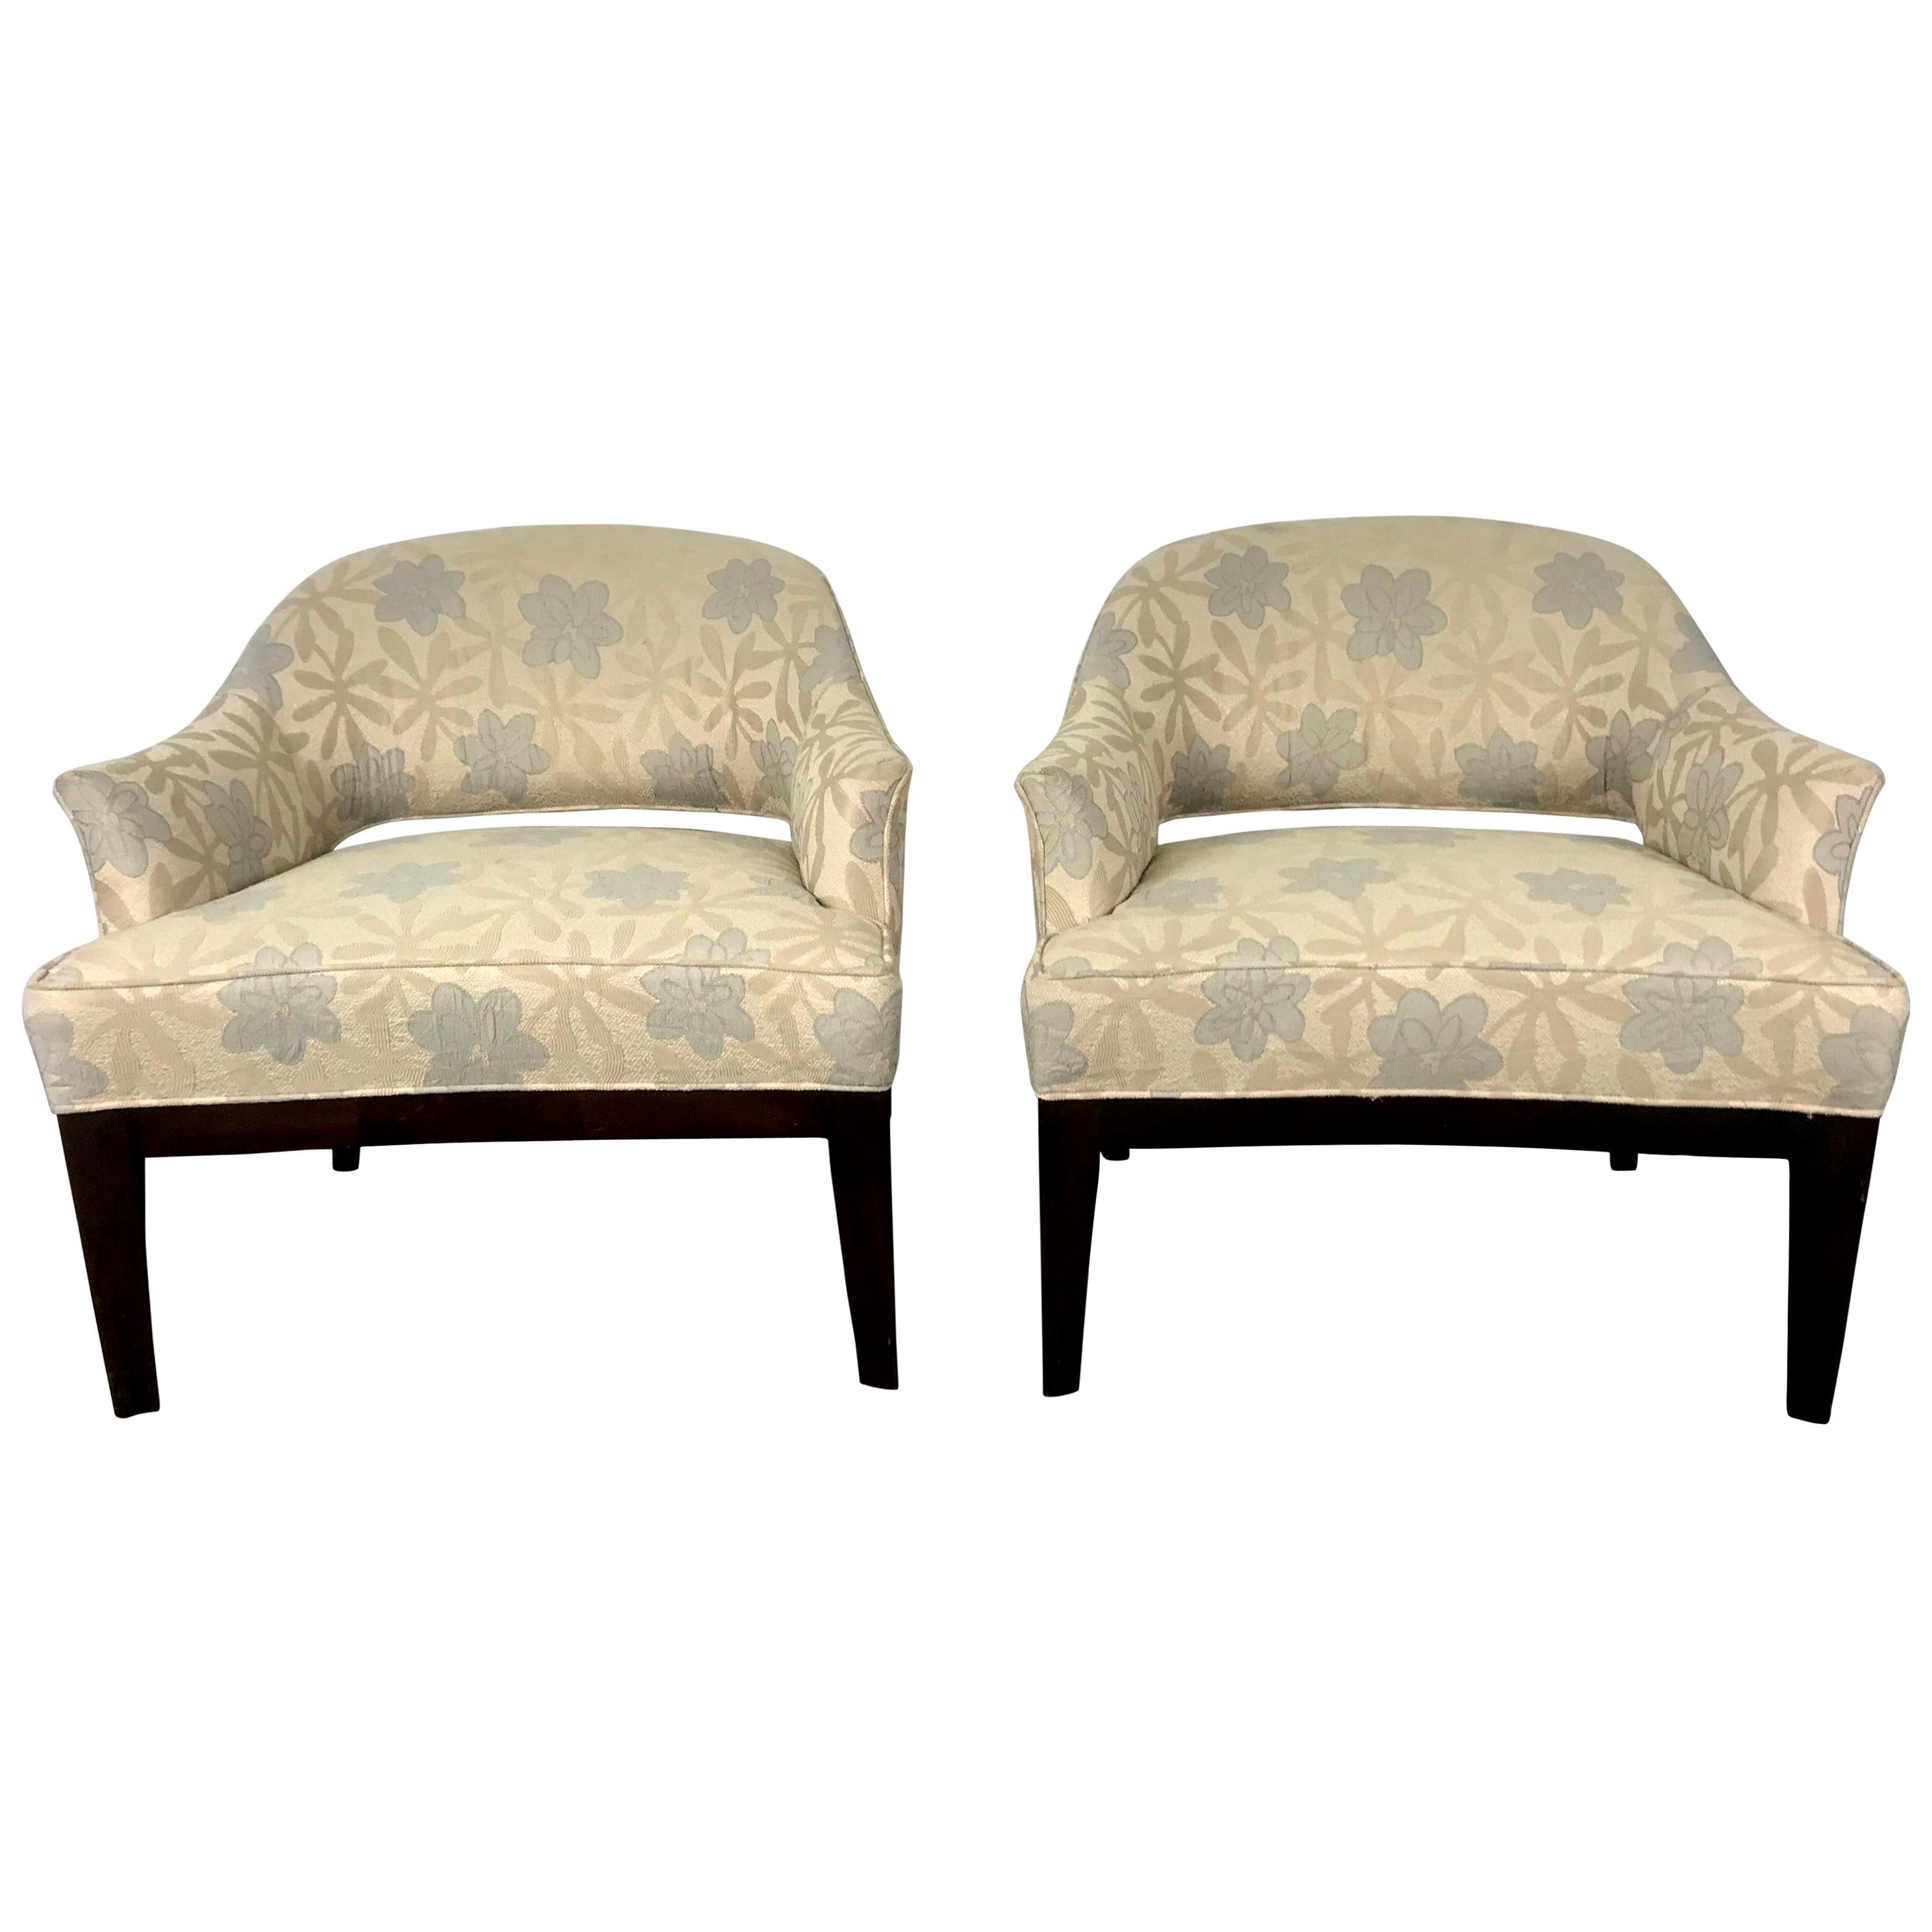 Pair of Lounge Chairs, Original Modernist Fabric